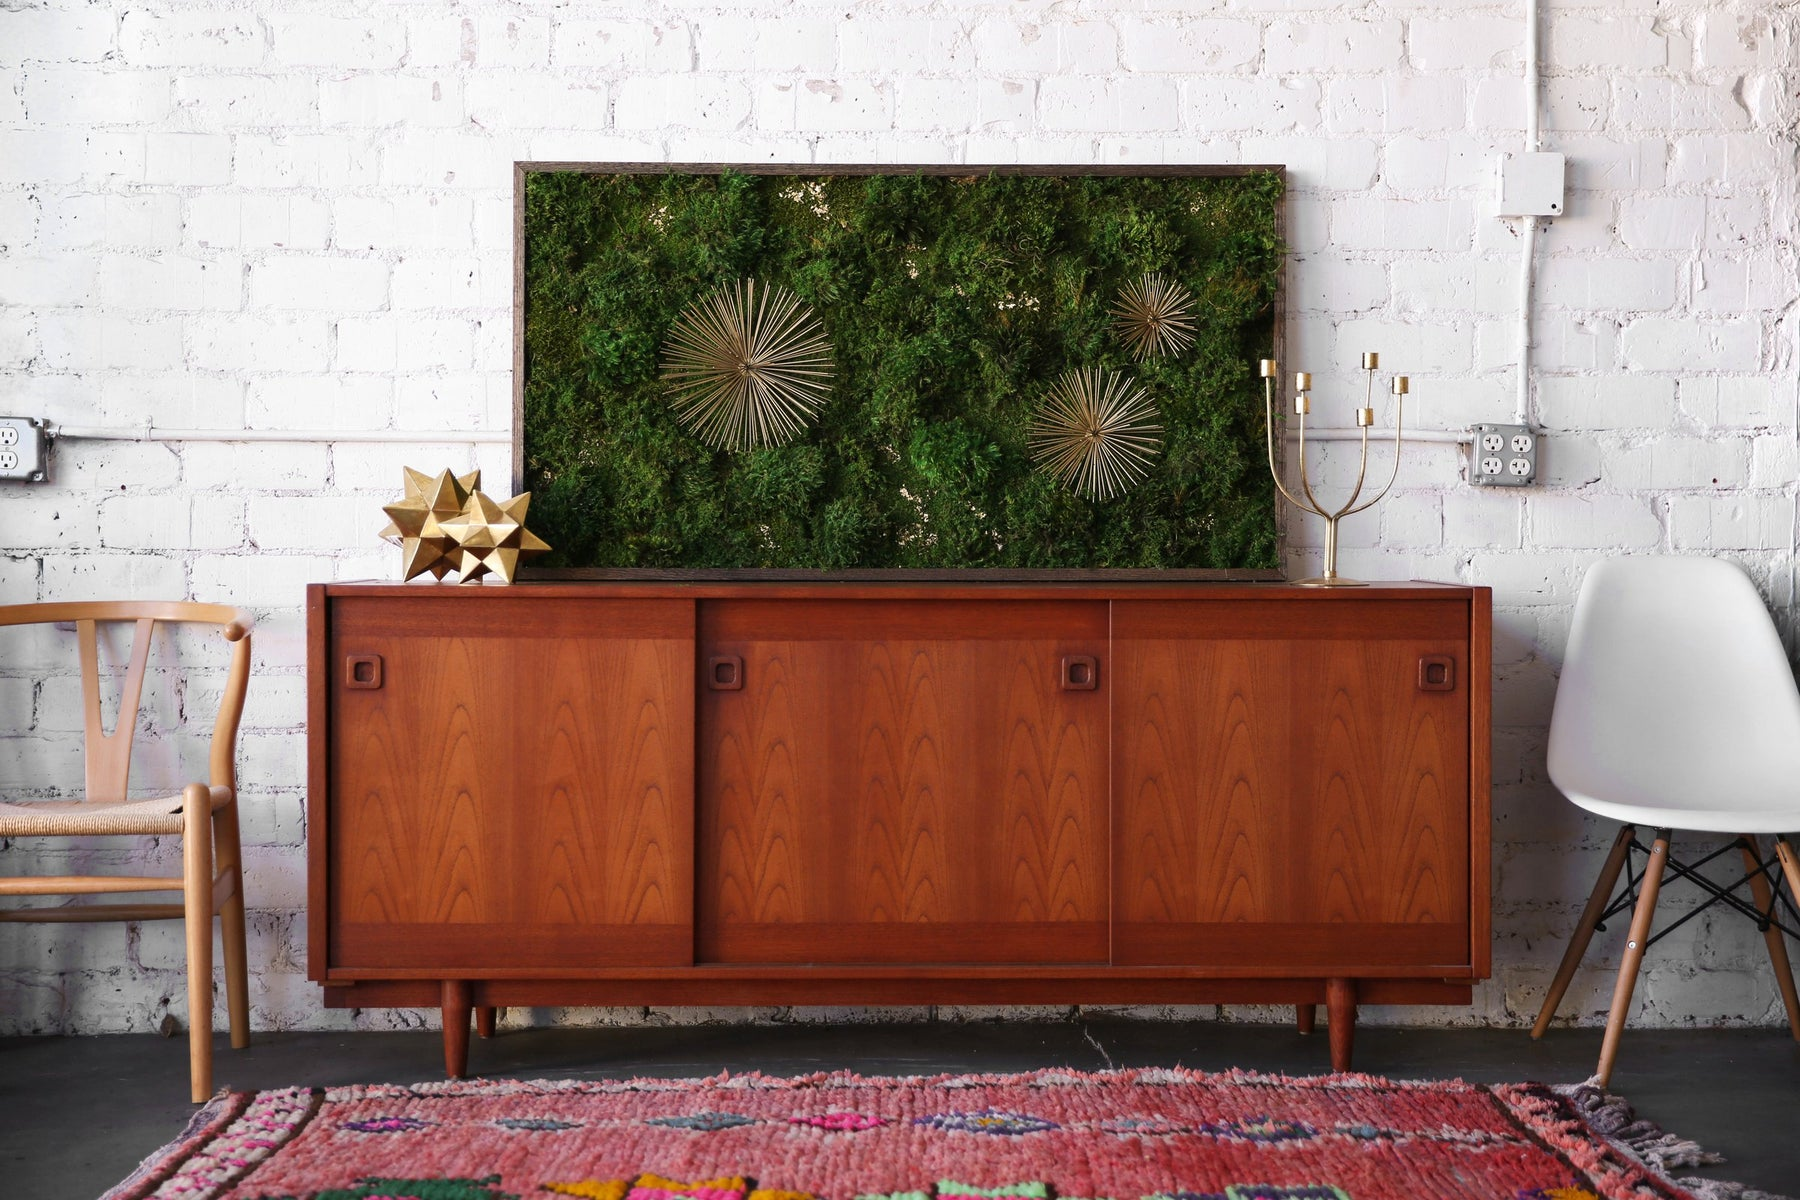 Kelley's starburst moss art on a mid century modern breakfront